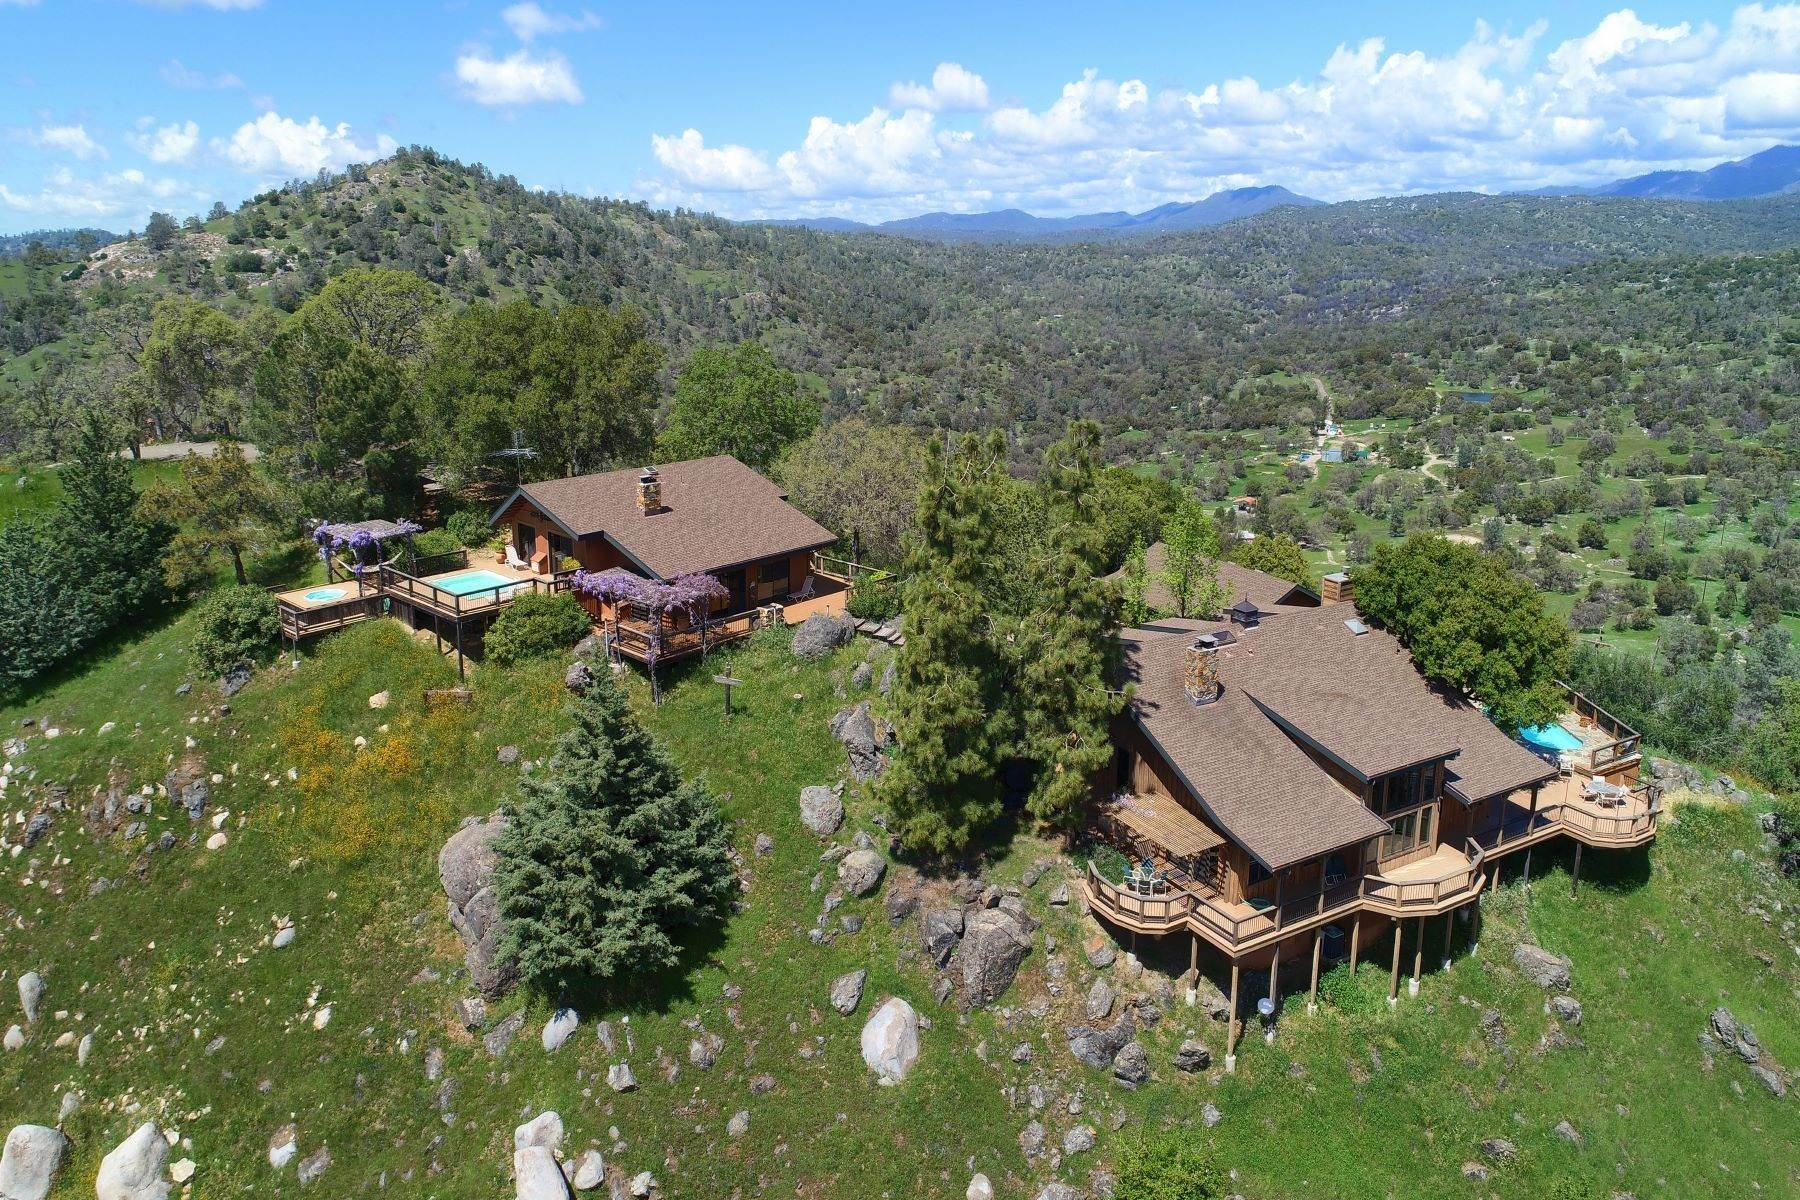 Single Family Homes for Active at Mountaintop Ranch with Incredible Views 3276 Indian Peak Road Mariposa, California 95338 United States